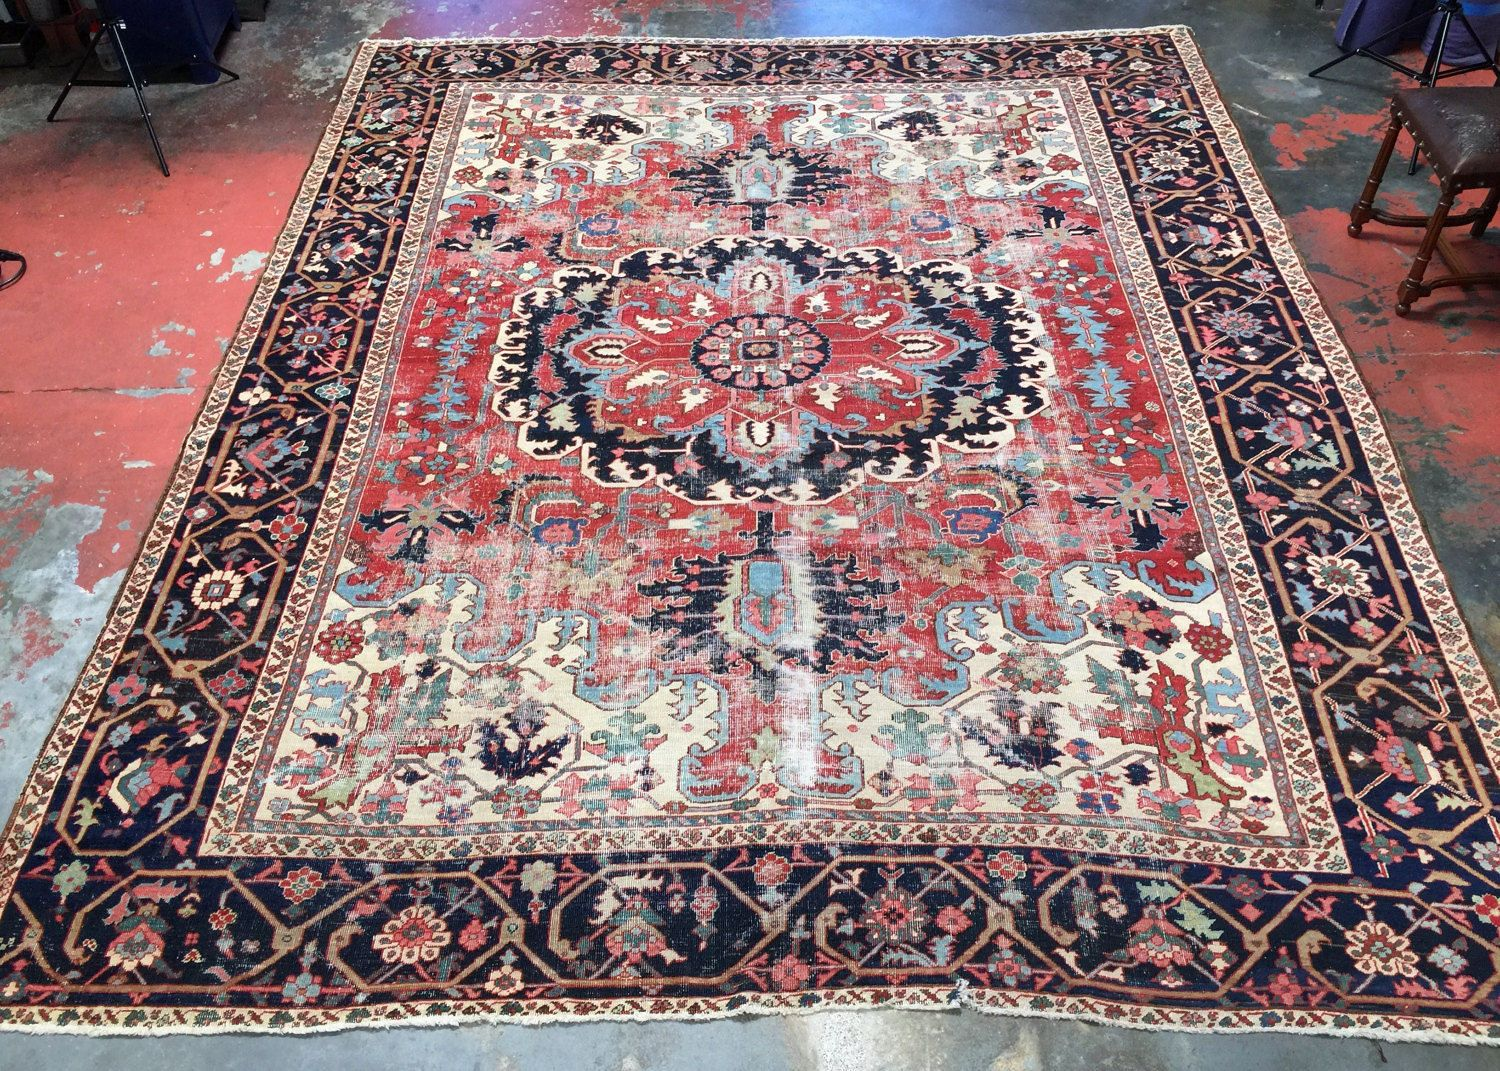 Rare Antique Heriz Serapi Rug 10x12 Magnificent By Antieksman Serapi Rug Rugs Distressed Rugs